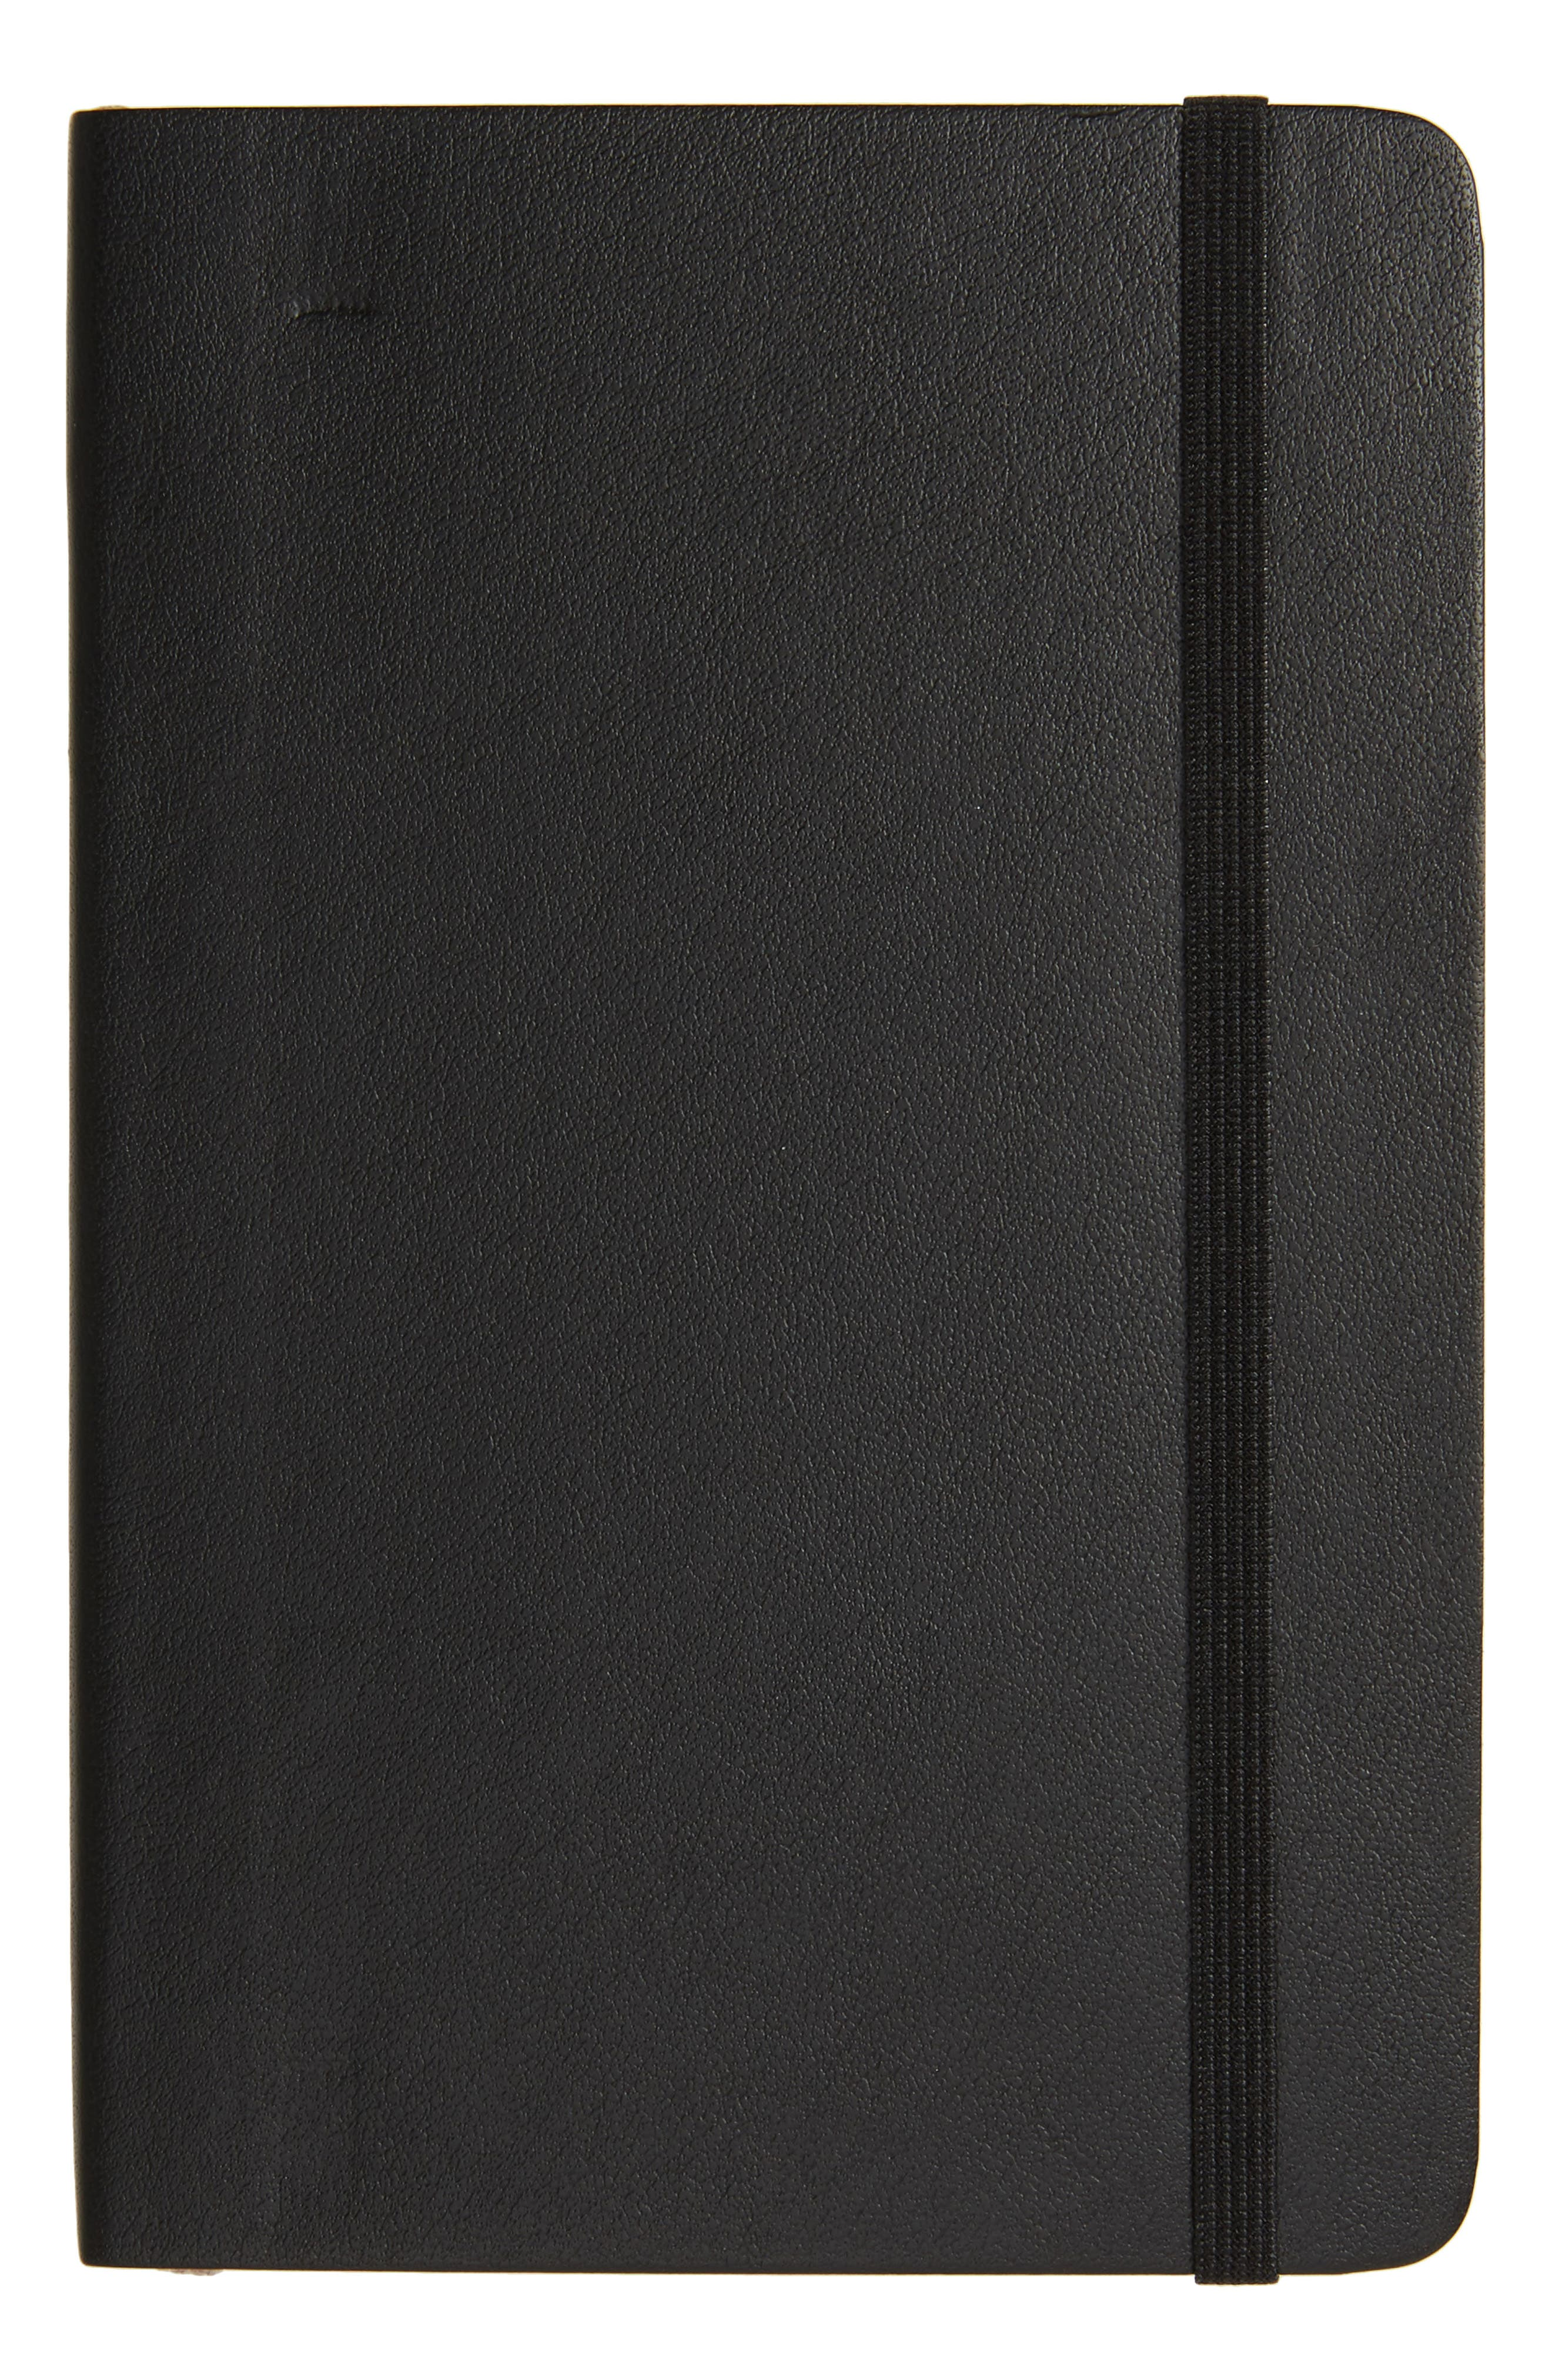 Main Image - Moleskine Classic Pocket Soft Cover Notebook